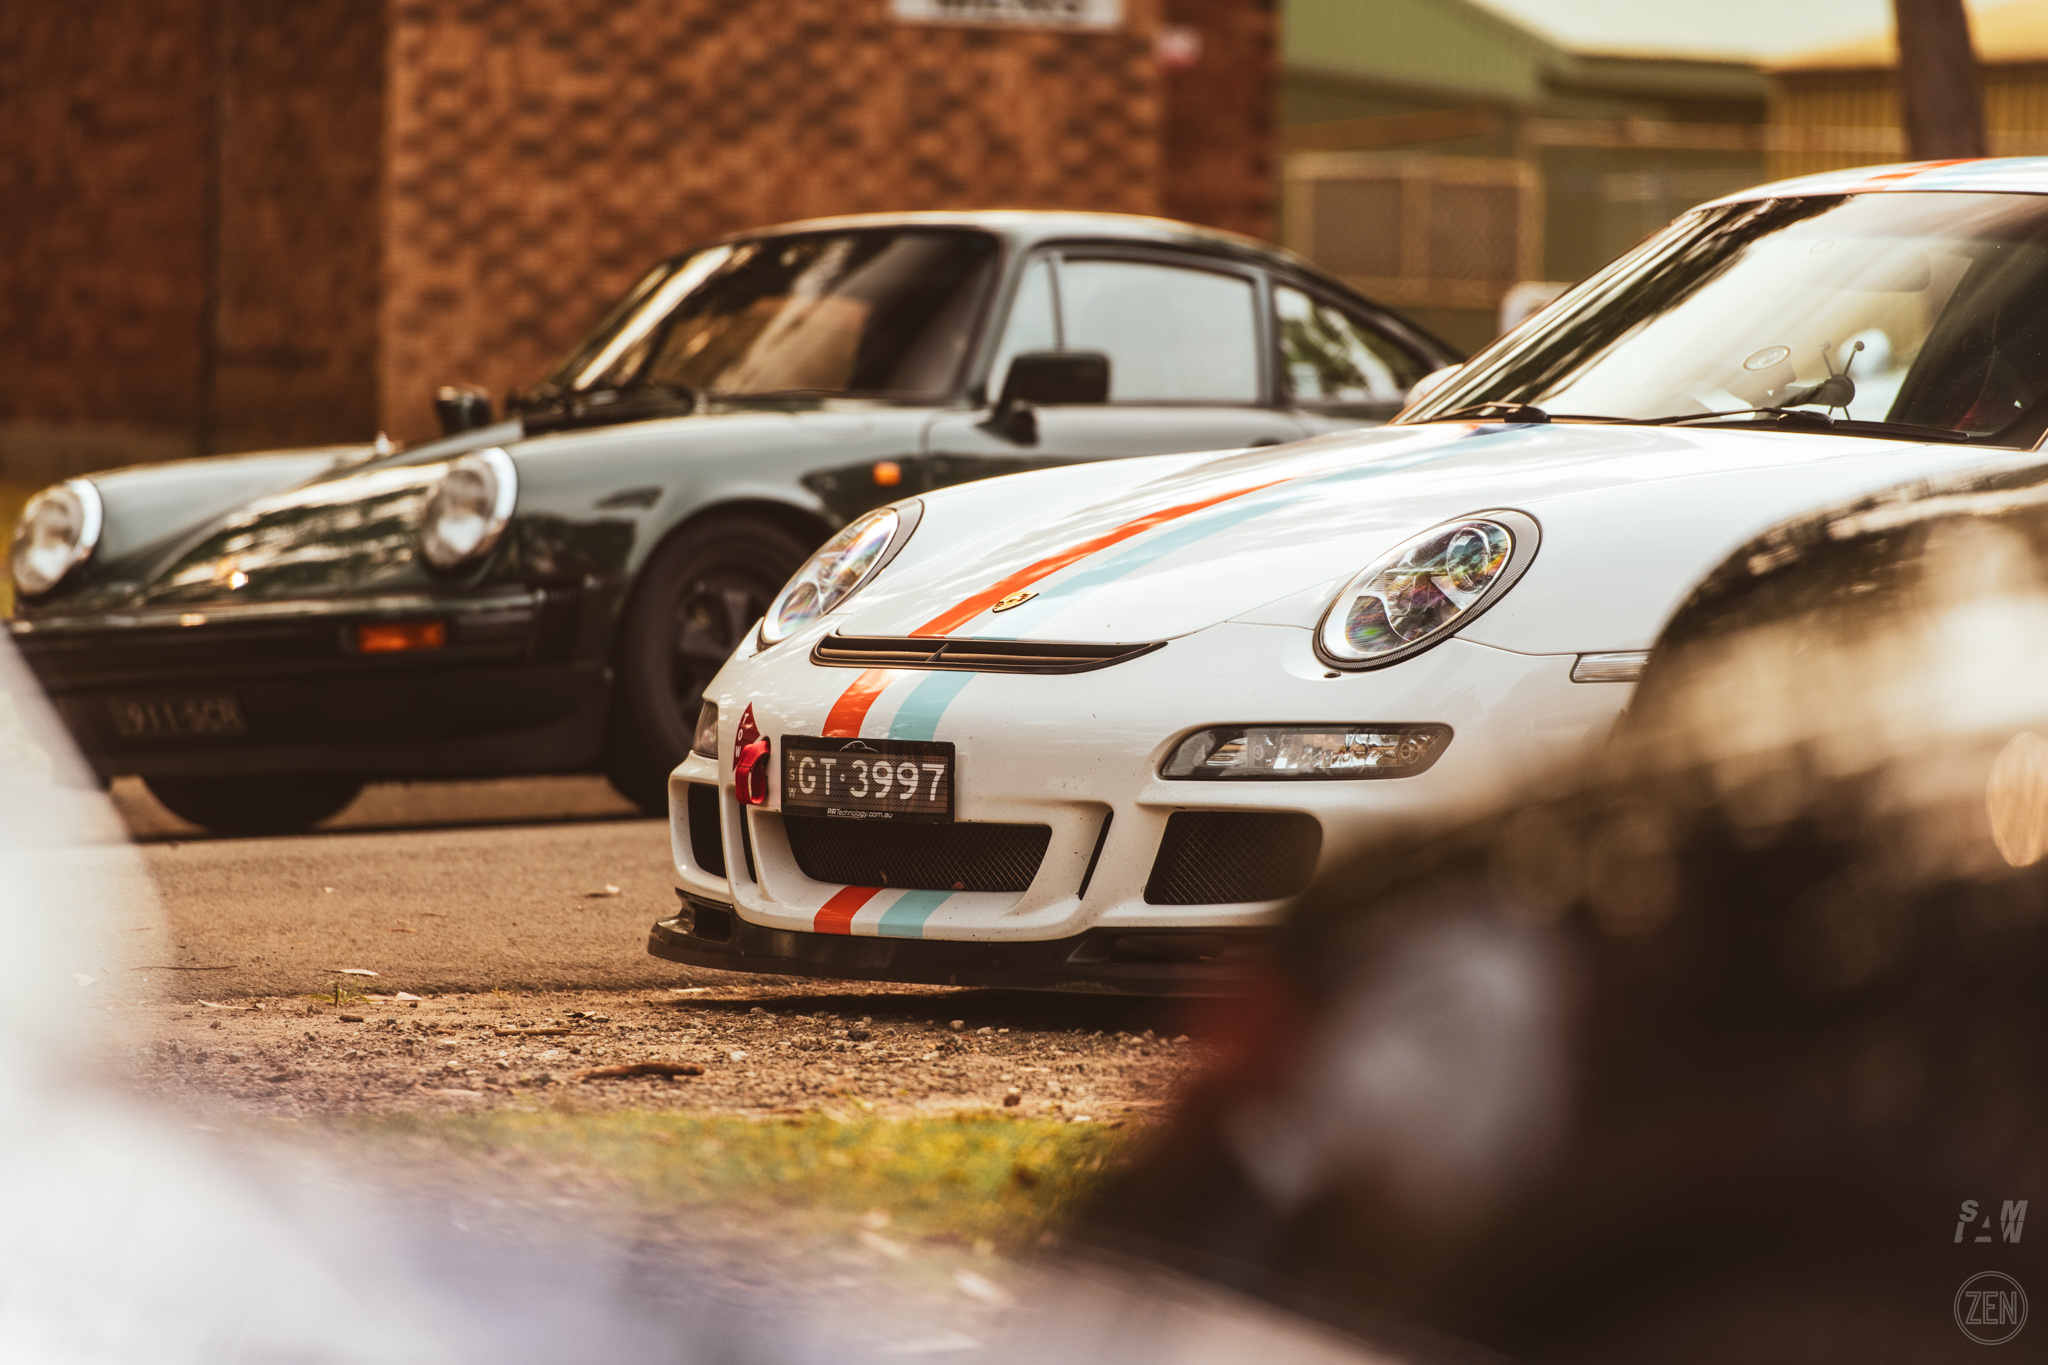 2019-12-08 - Porsches & Coffee 095